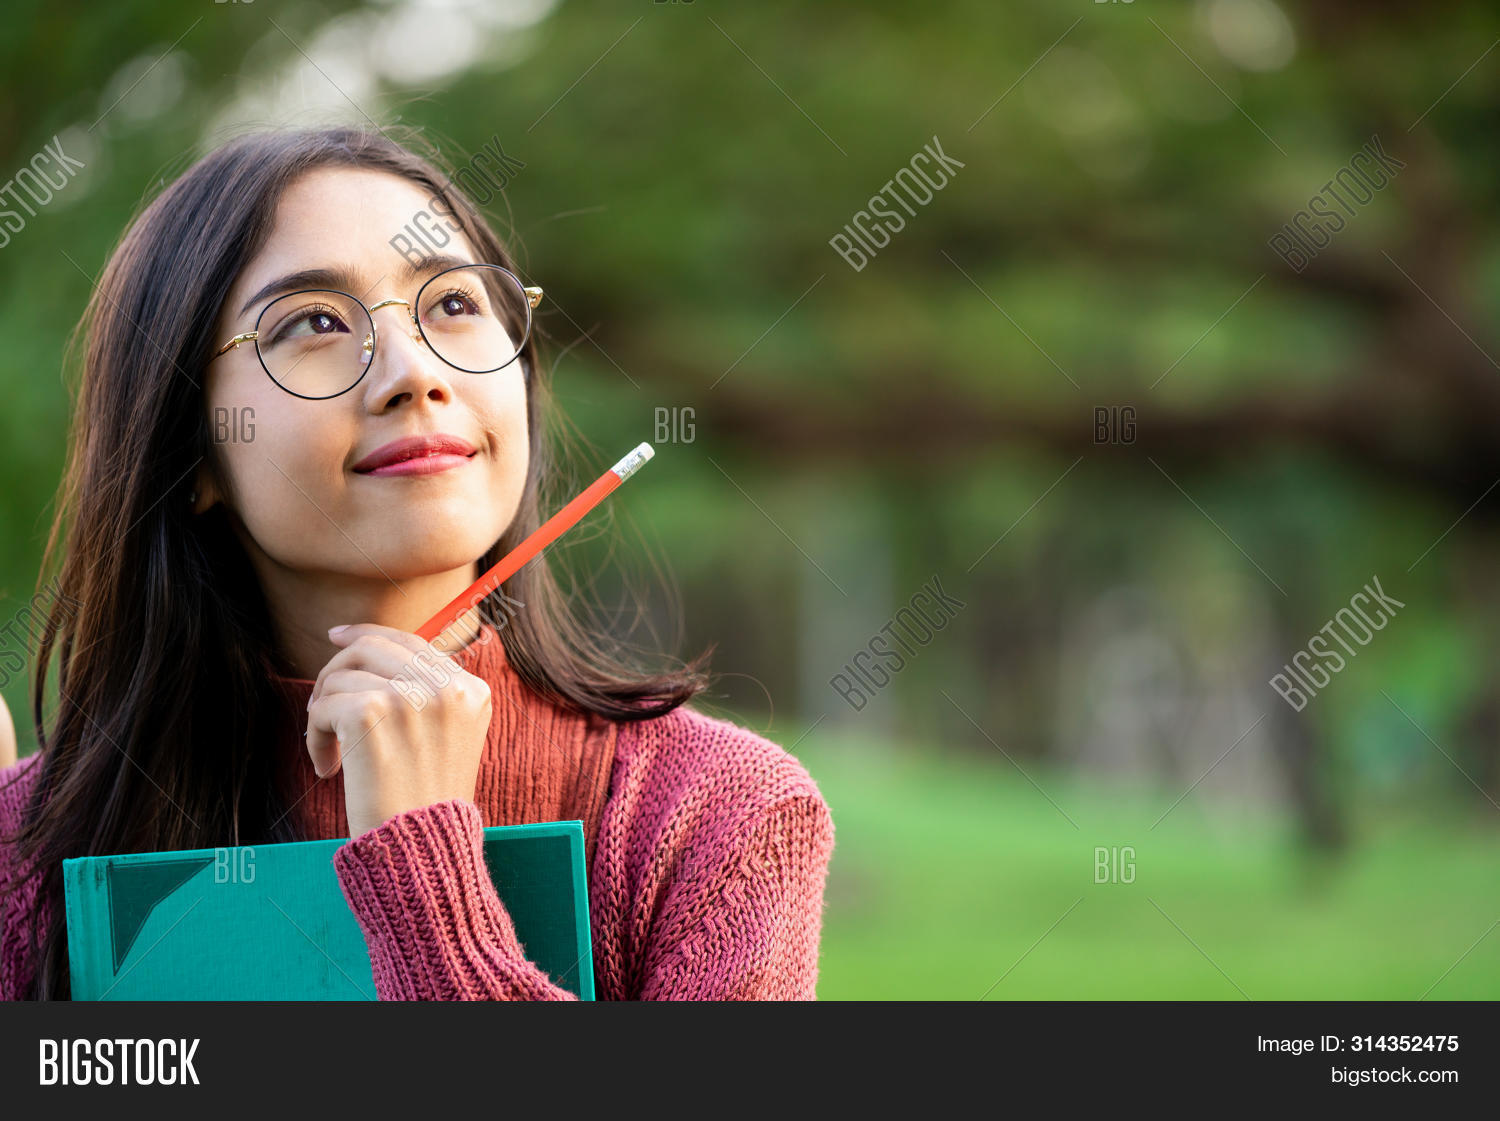 Young Creative Student Girl Thinking Or Planning Future Education While Holding Pencil In Hand. Crea